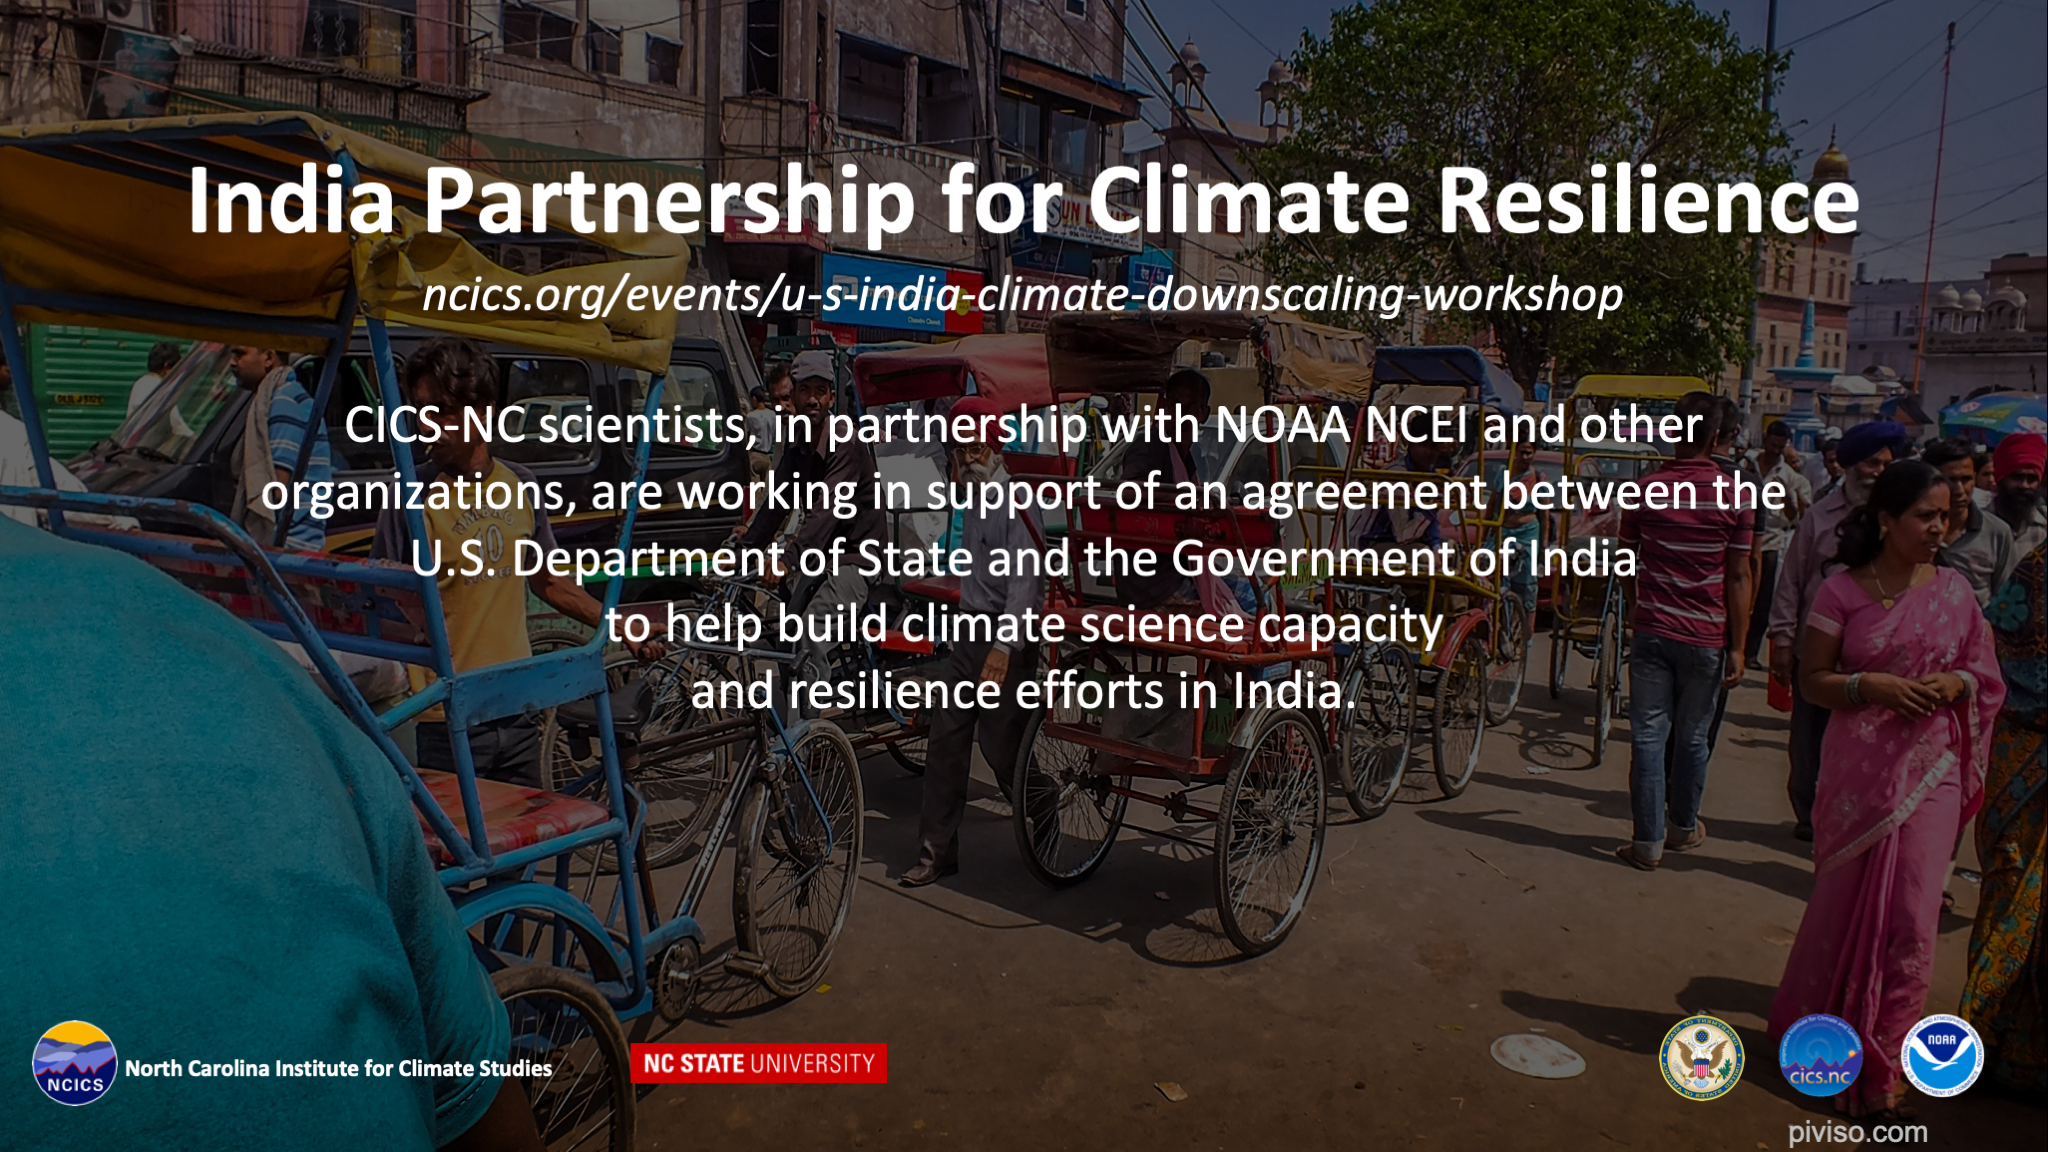 India Partnership for Climate Resiliency